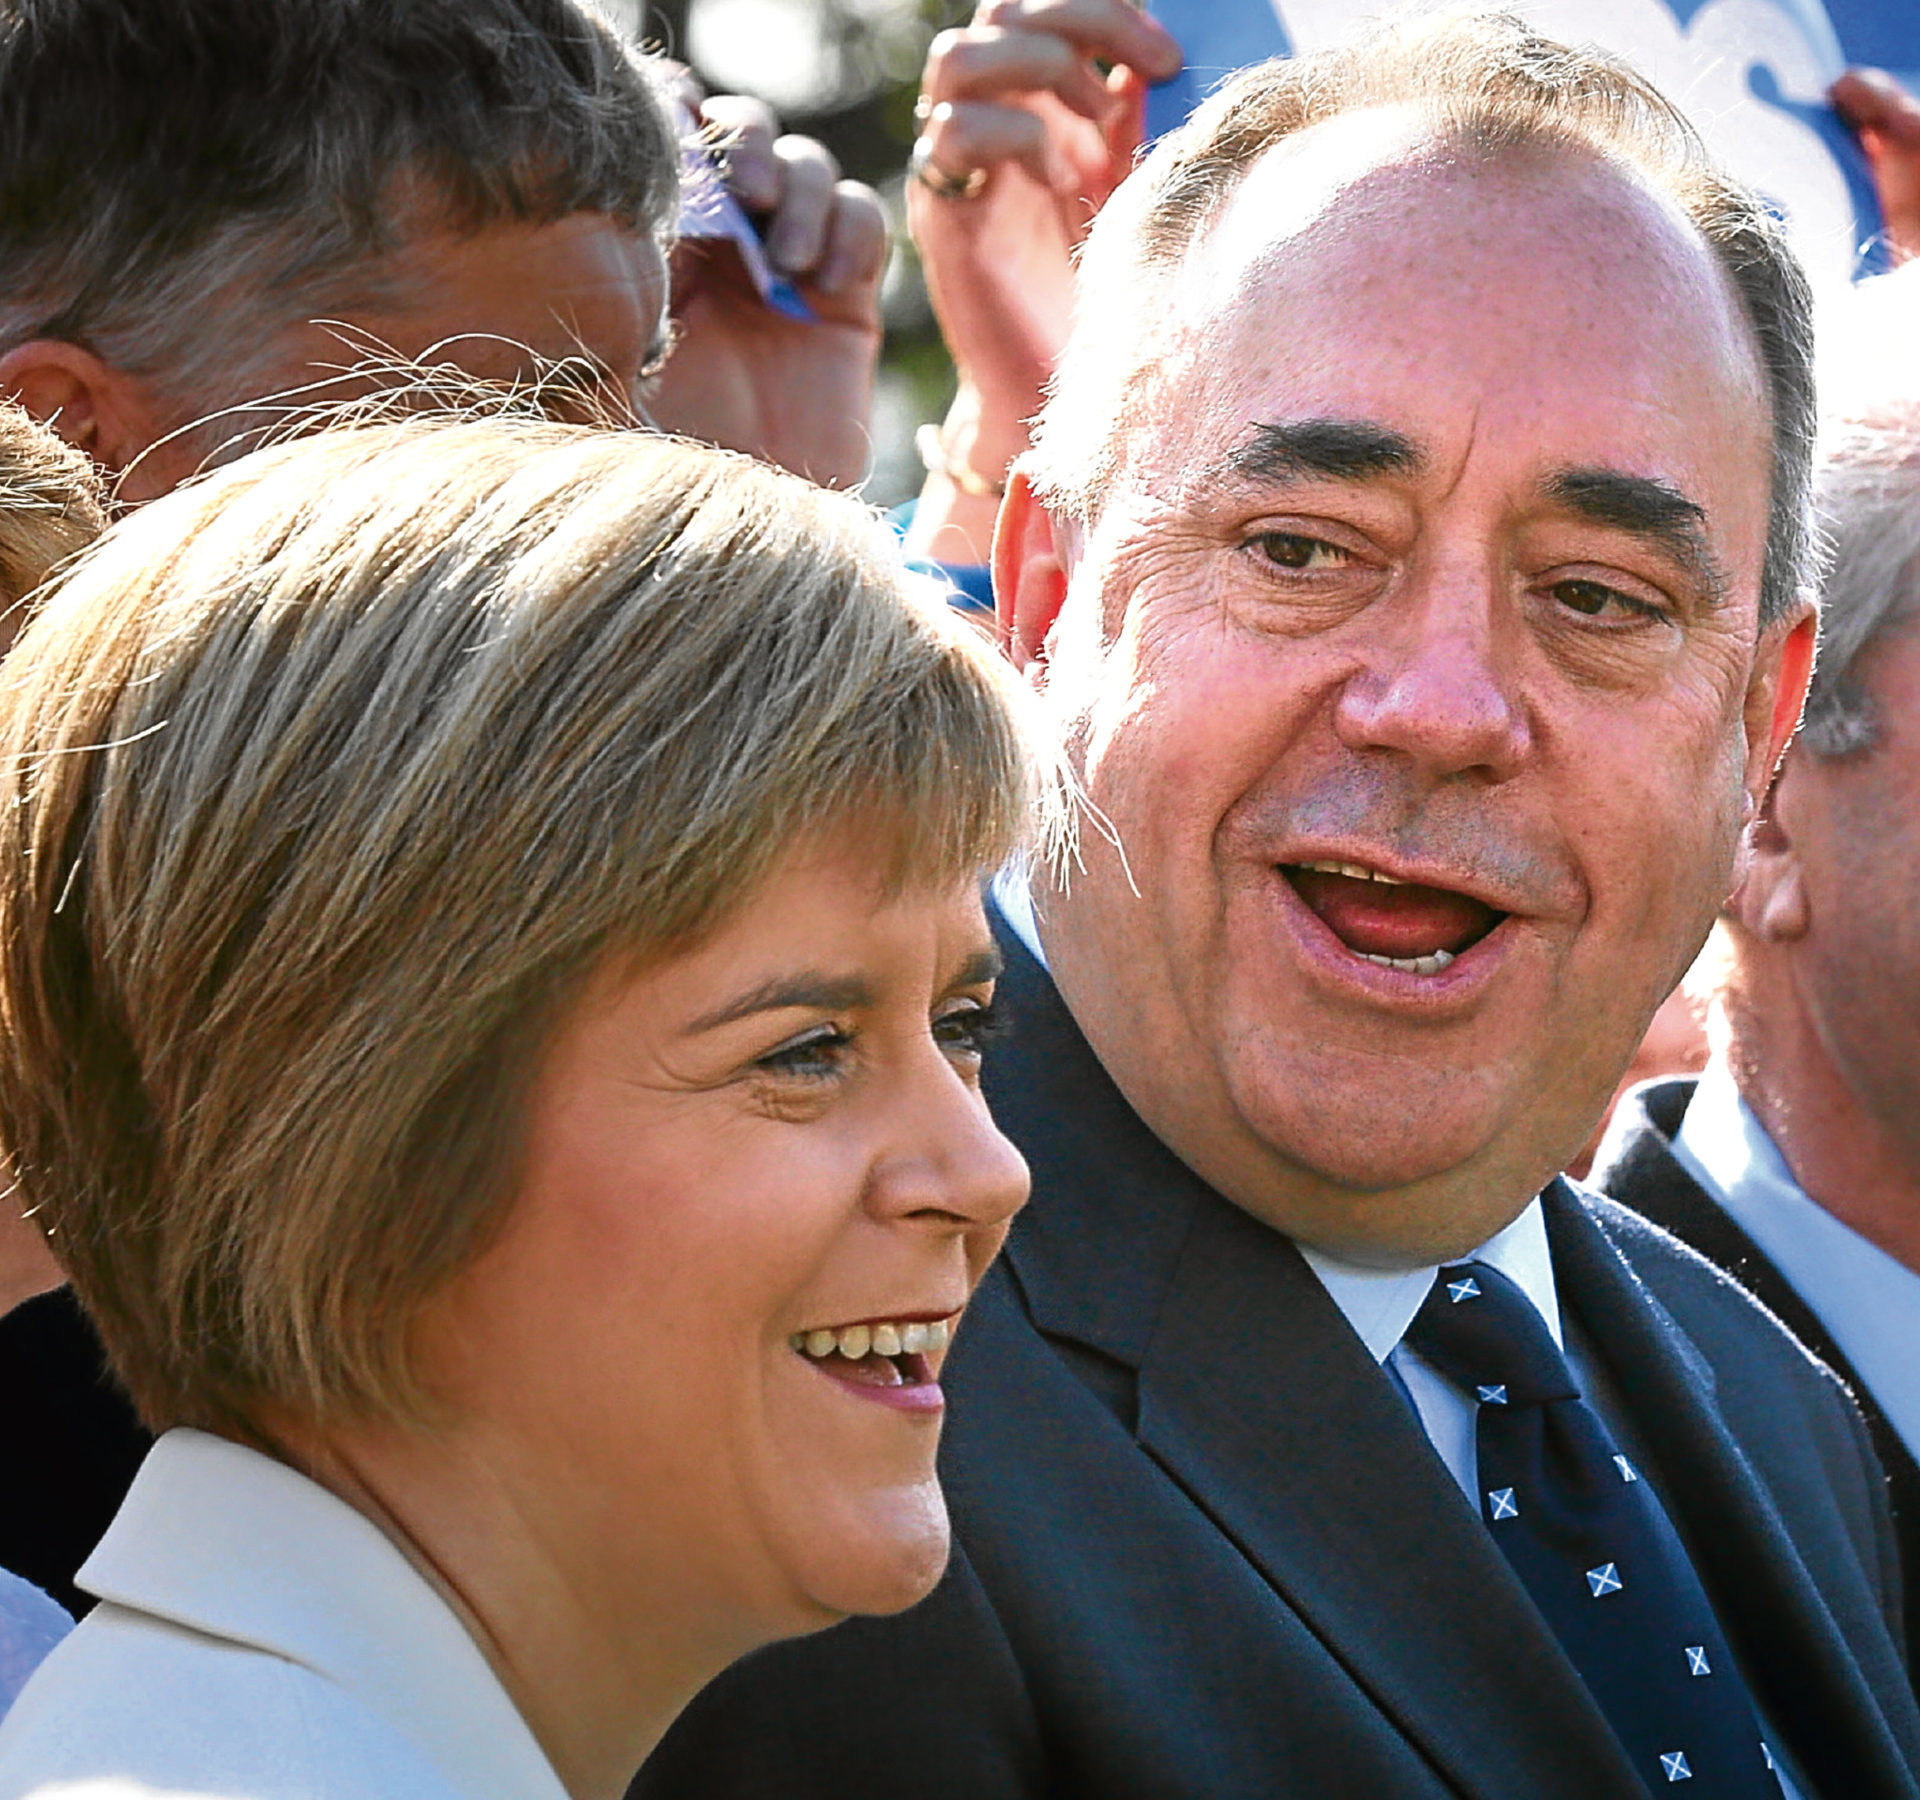 Nicola Sturgeon and Alex Salmond during the 2014 camapaign.